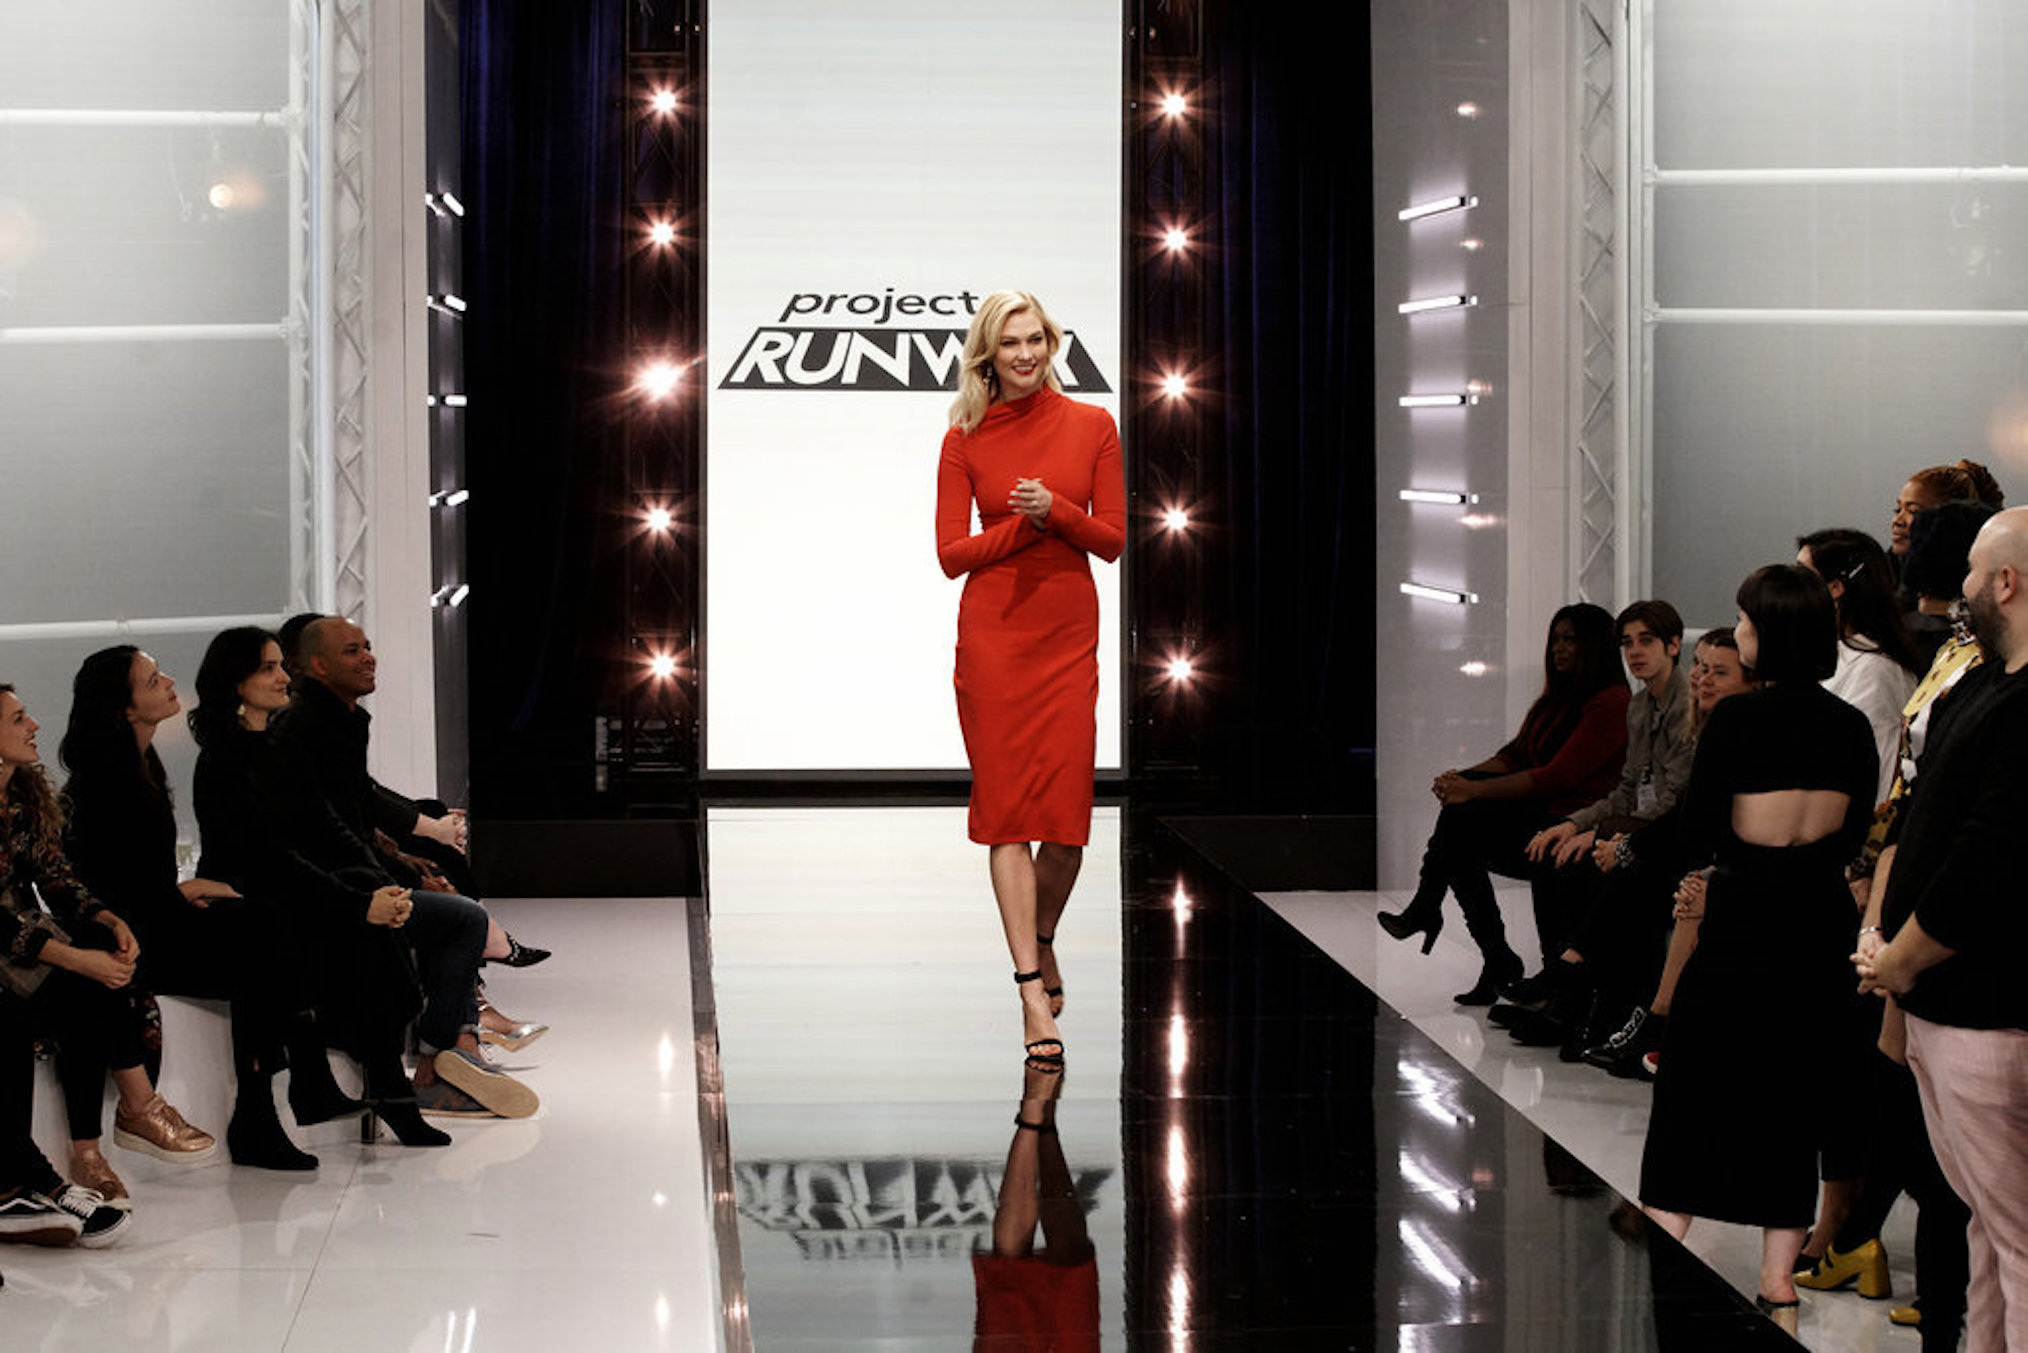 Are Fans Ready For Project Runway Season 17 Bravo Return